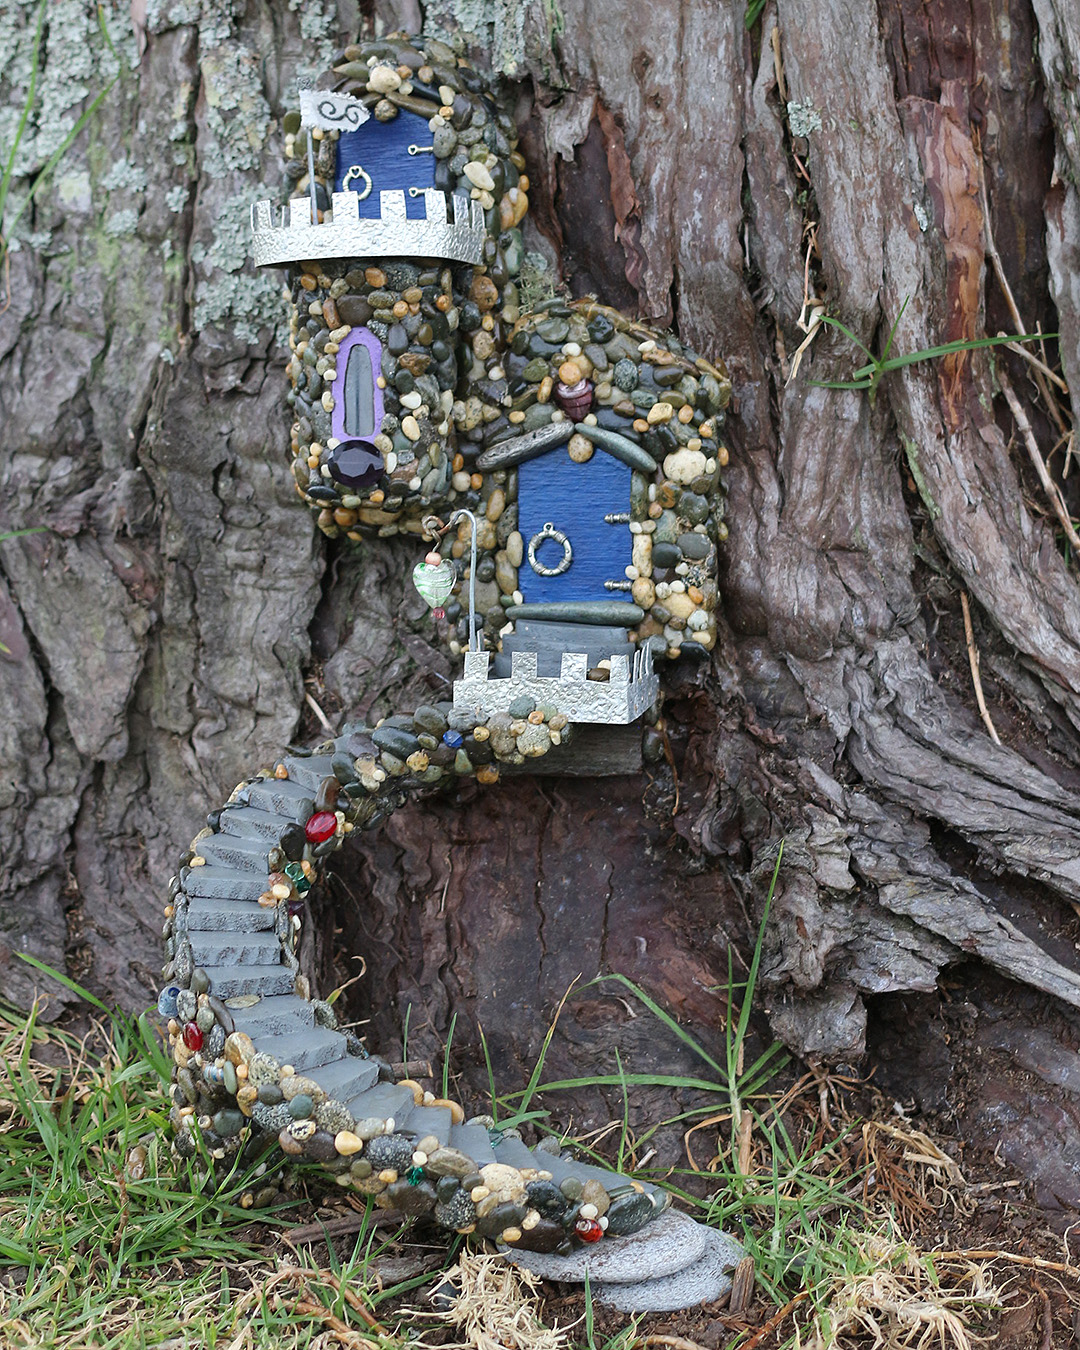 A darling fairy house at Hobsonville point.